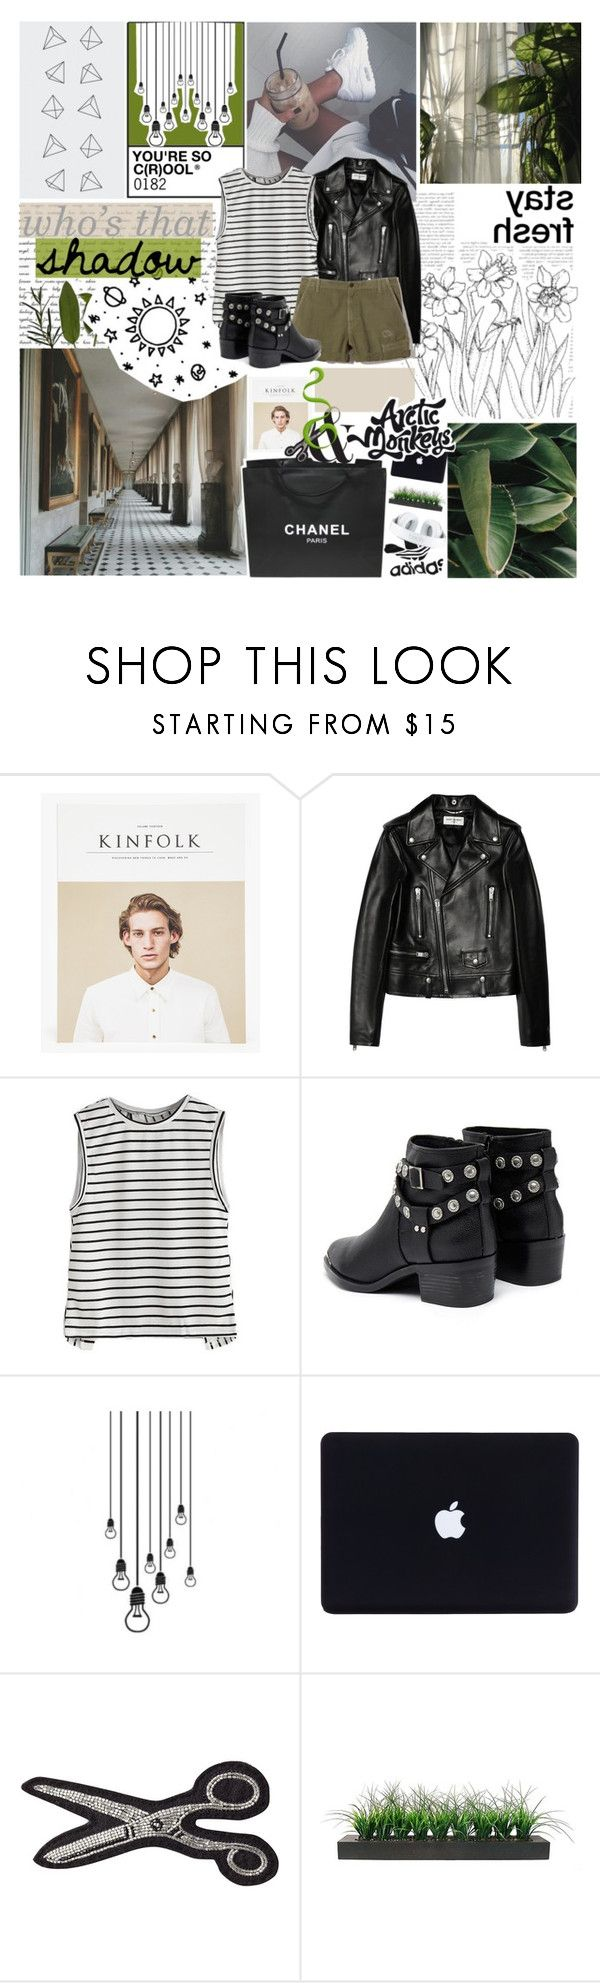 """⎨new story plotting / Kalon + important news ⎬"" by solastamel ❤ liked on Polyvore featuring Kinfolk, Gucci, Yves Saint Laurent, Senso, Chanel, Olympia Le-Tan, Vintage, polyvoreeditorial, polyvorefashion and Melaniesfavorites"